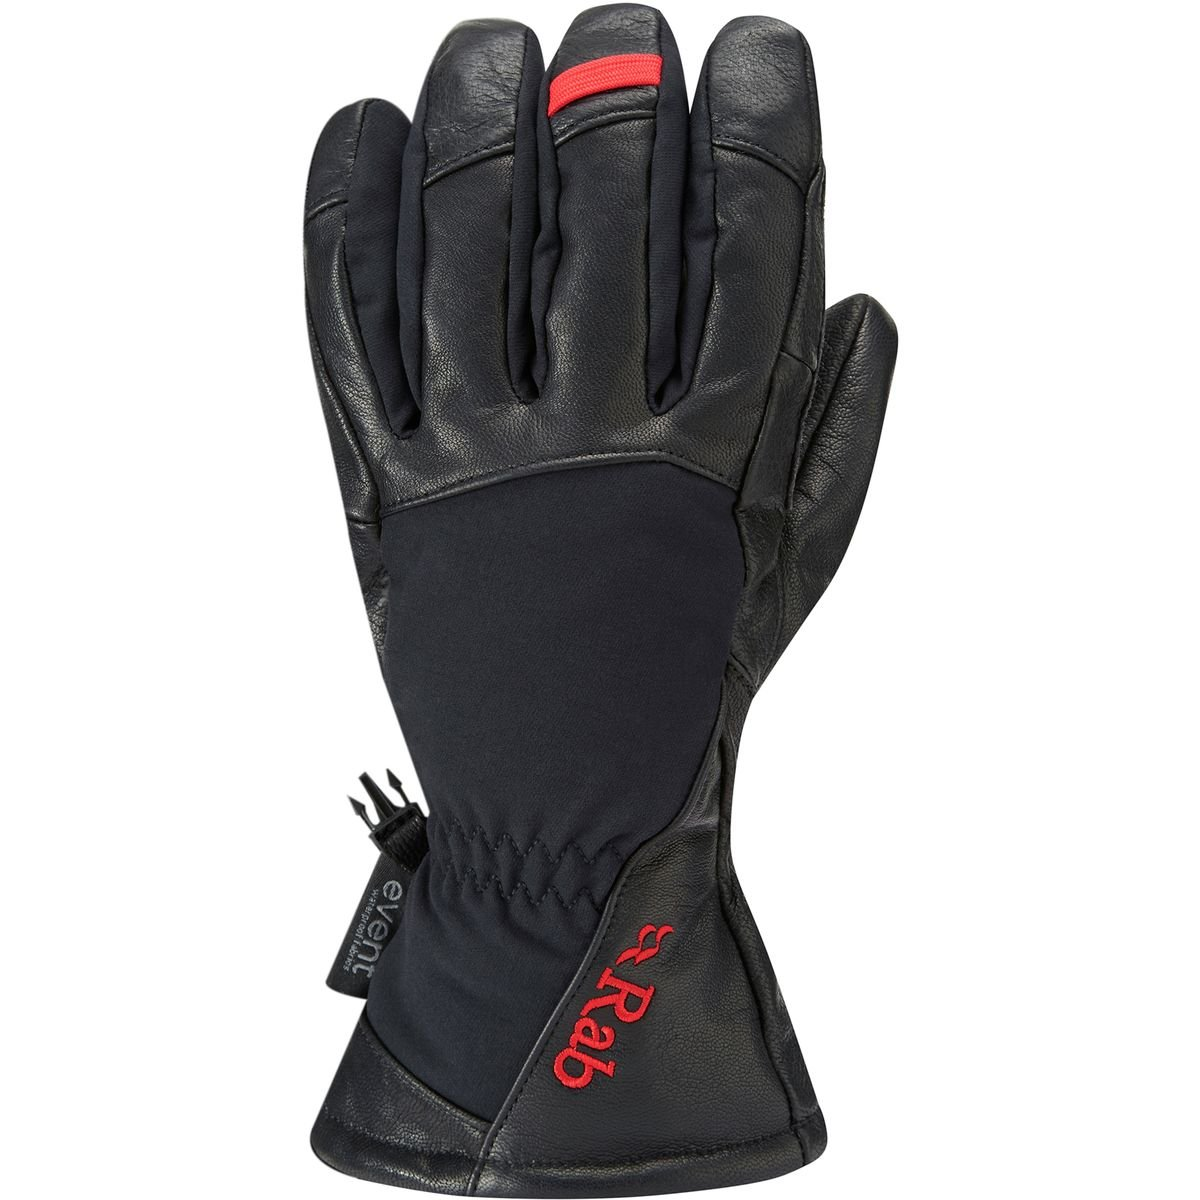 Rab Guide Glove - Men's Black X-Large by RAB